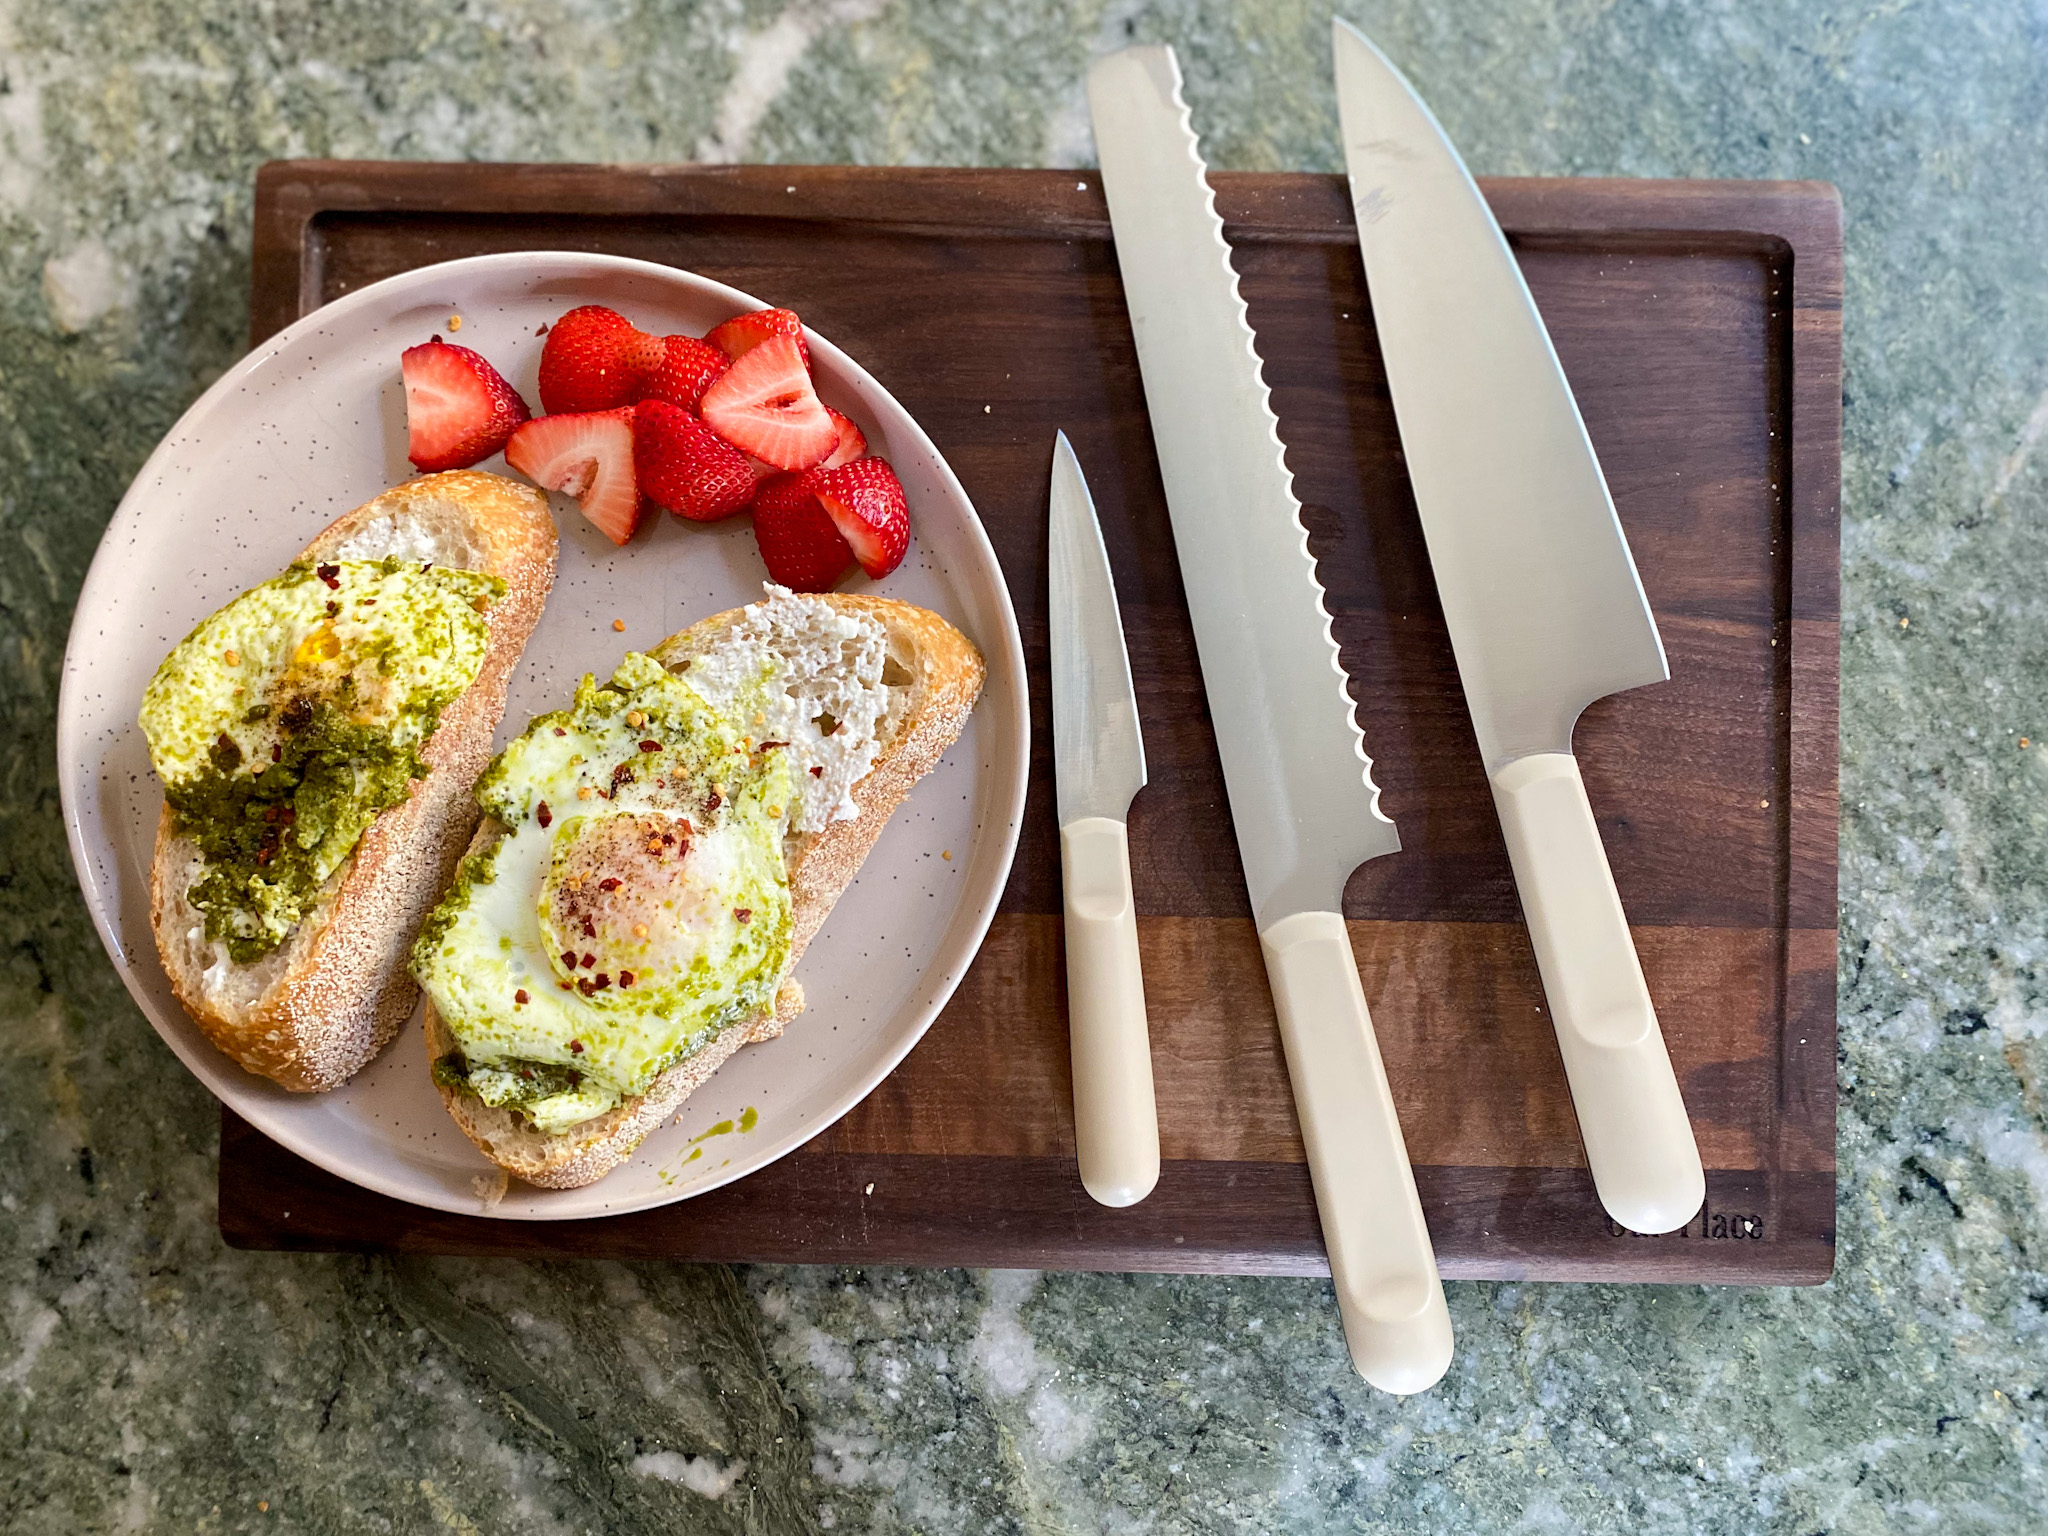 Our Place Knives Review knives on a chopping board and plate with food